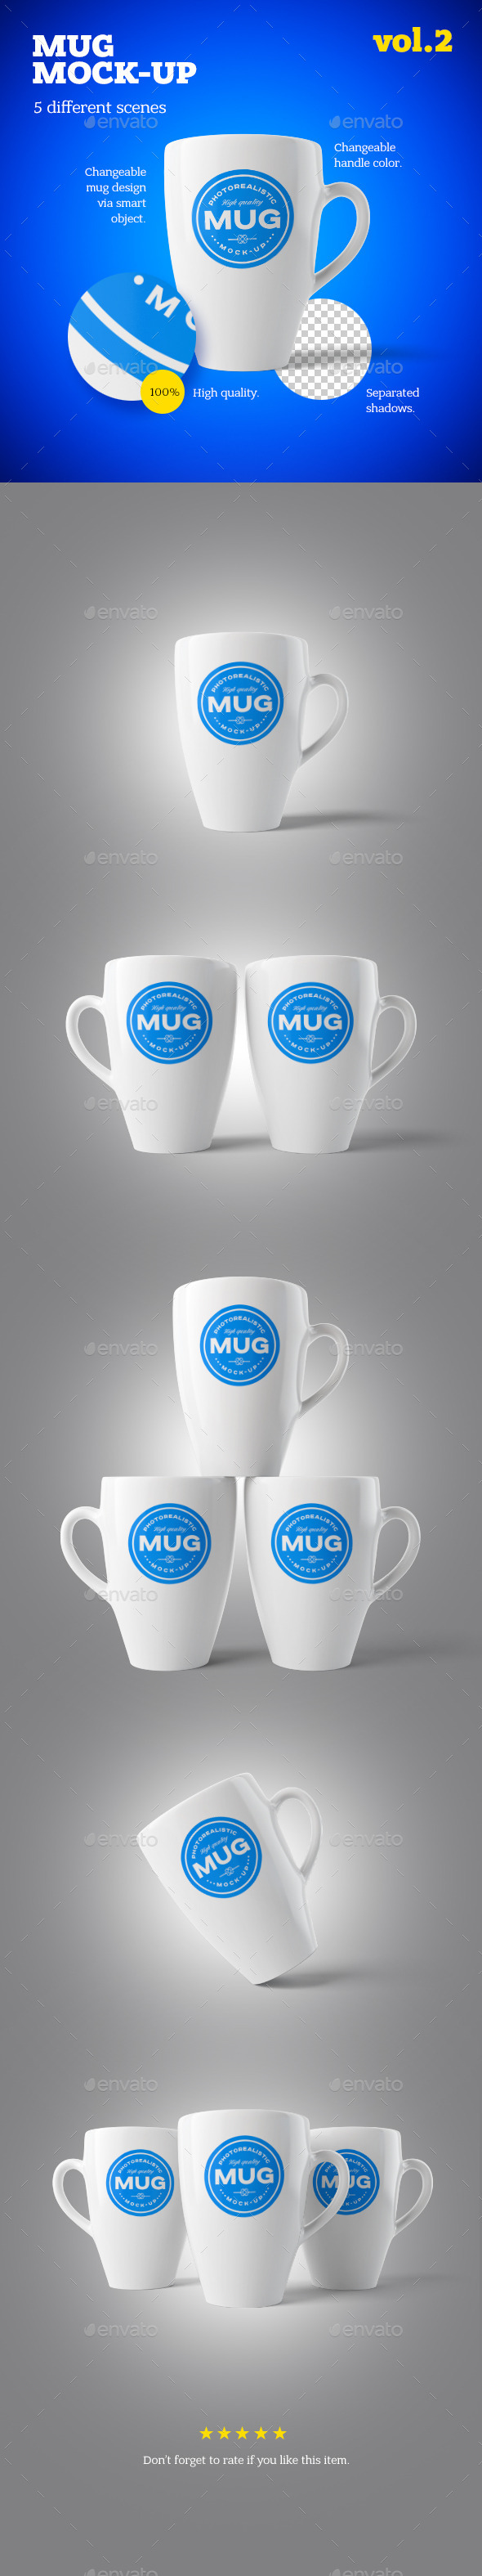 GraphicRiver Mug Mock-up Vol.2 10589814